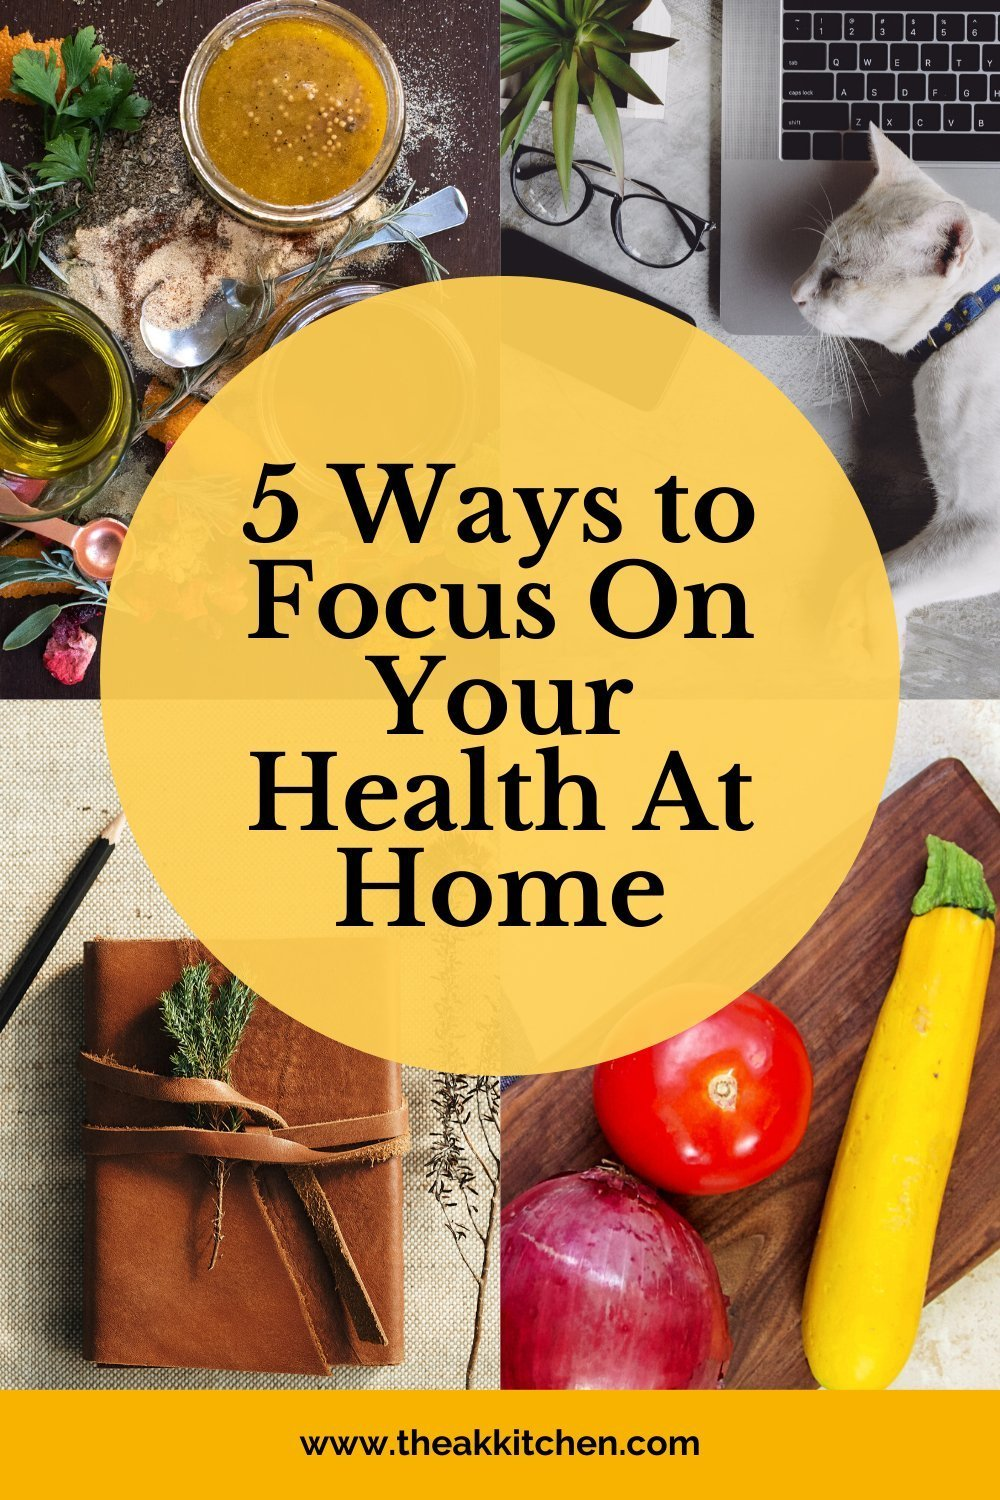 5 Ways to Focus On Your Health At Home